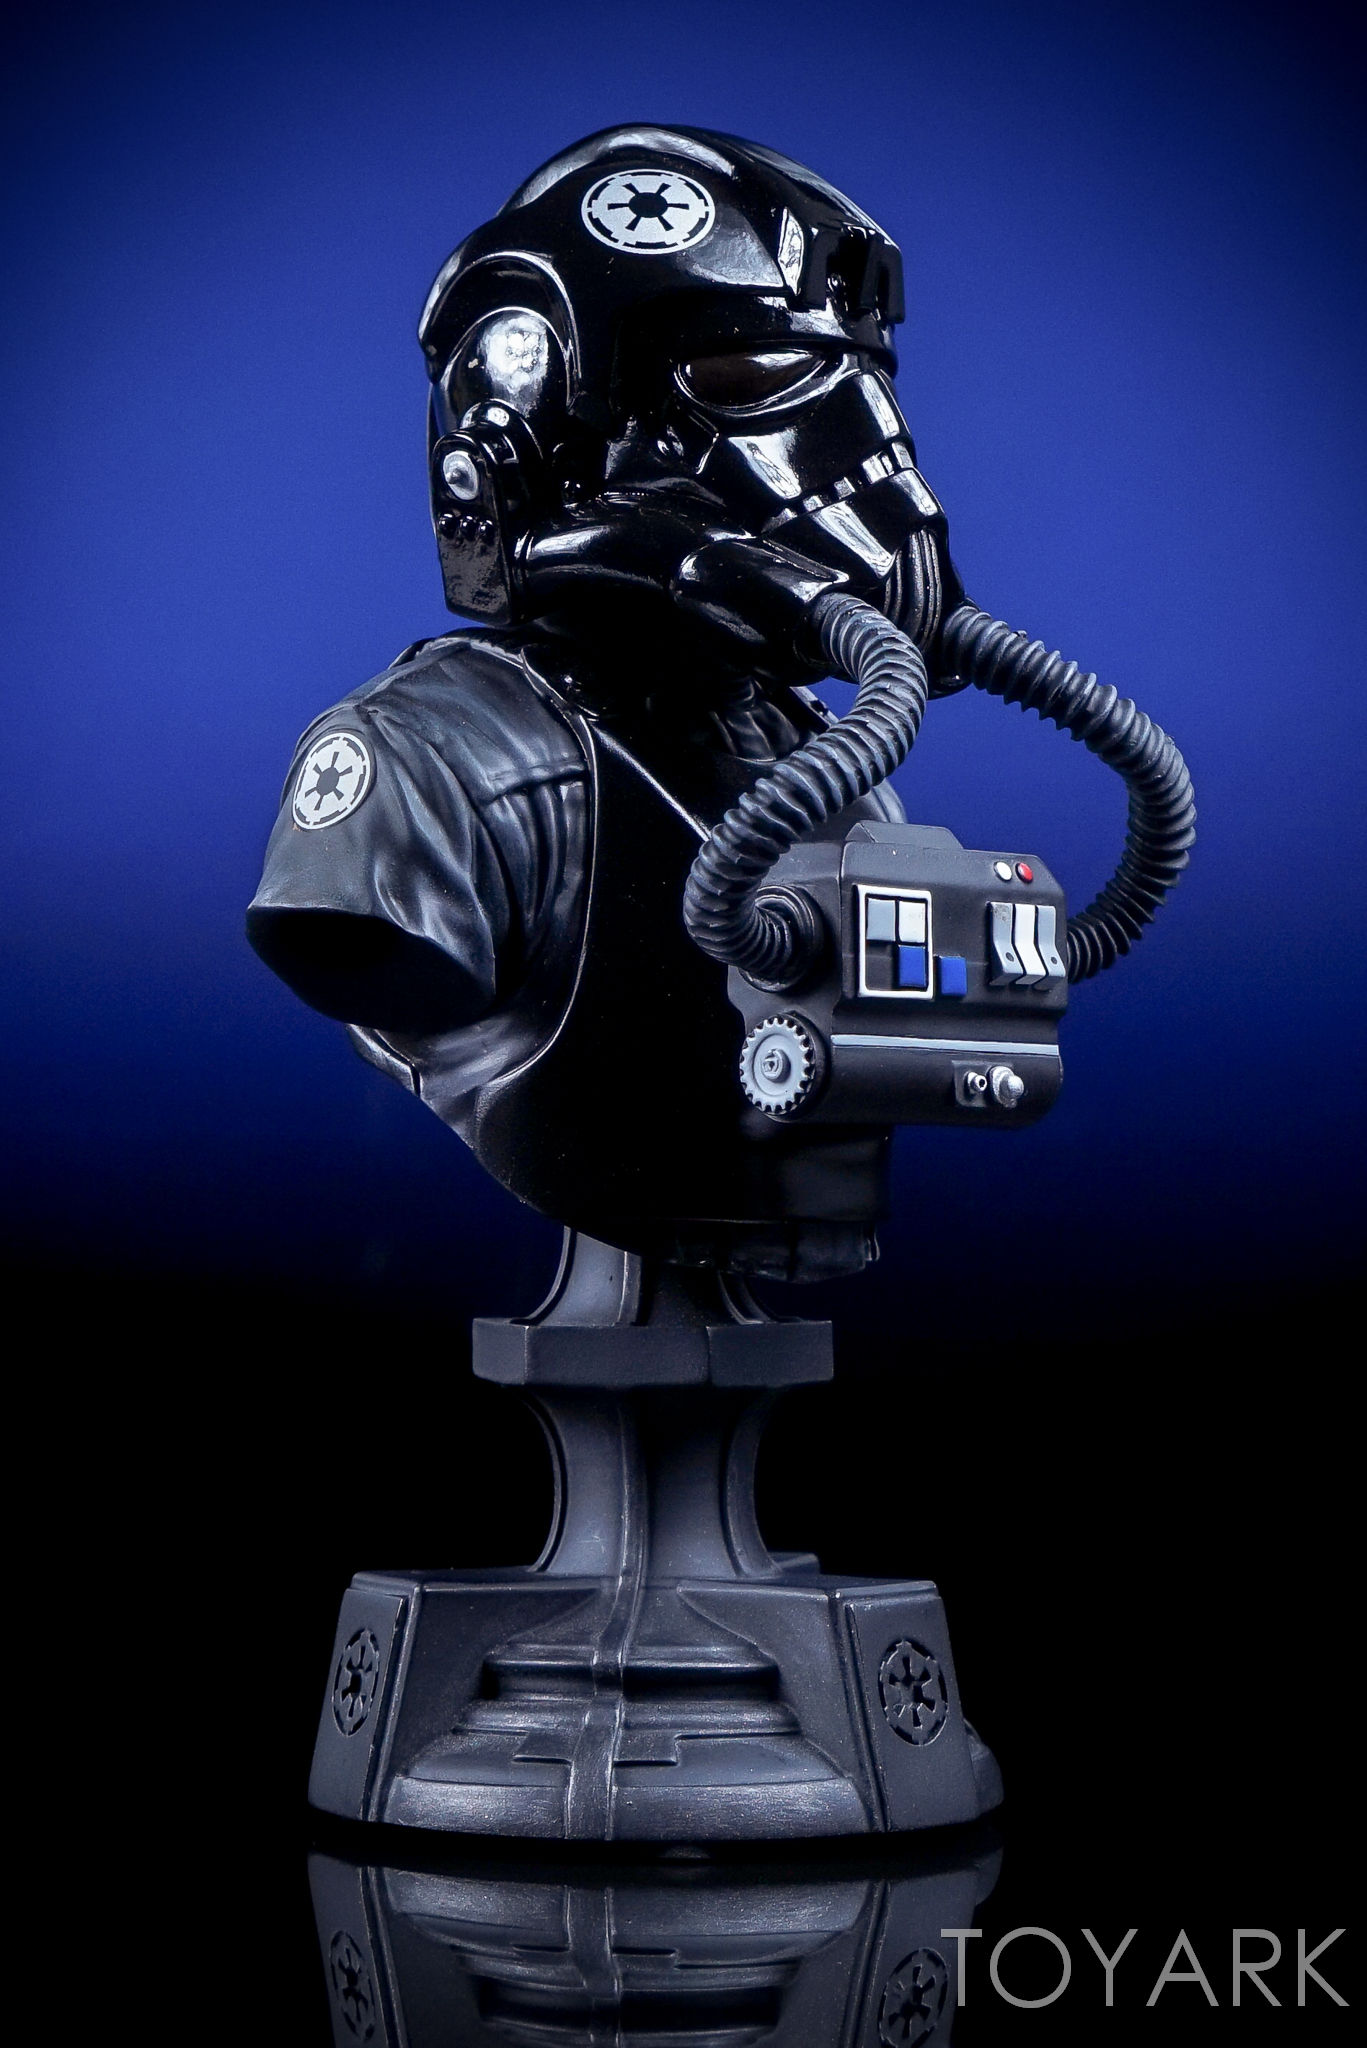 http://news.toyark.com/wp-content/uploads/sites/4/2016/09/GG-Star-Wars-TIE-Fighter-Pilot-Bust-014.jpg